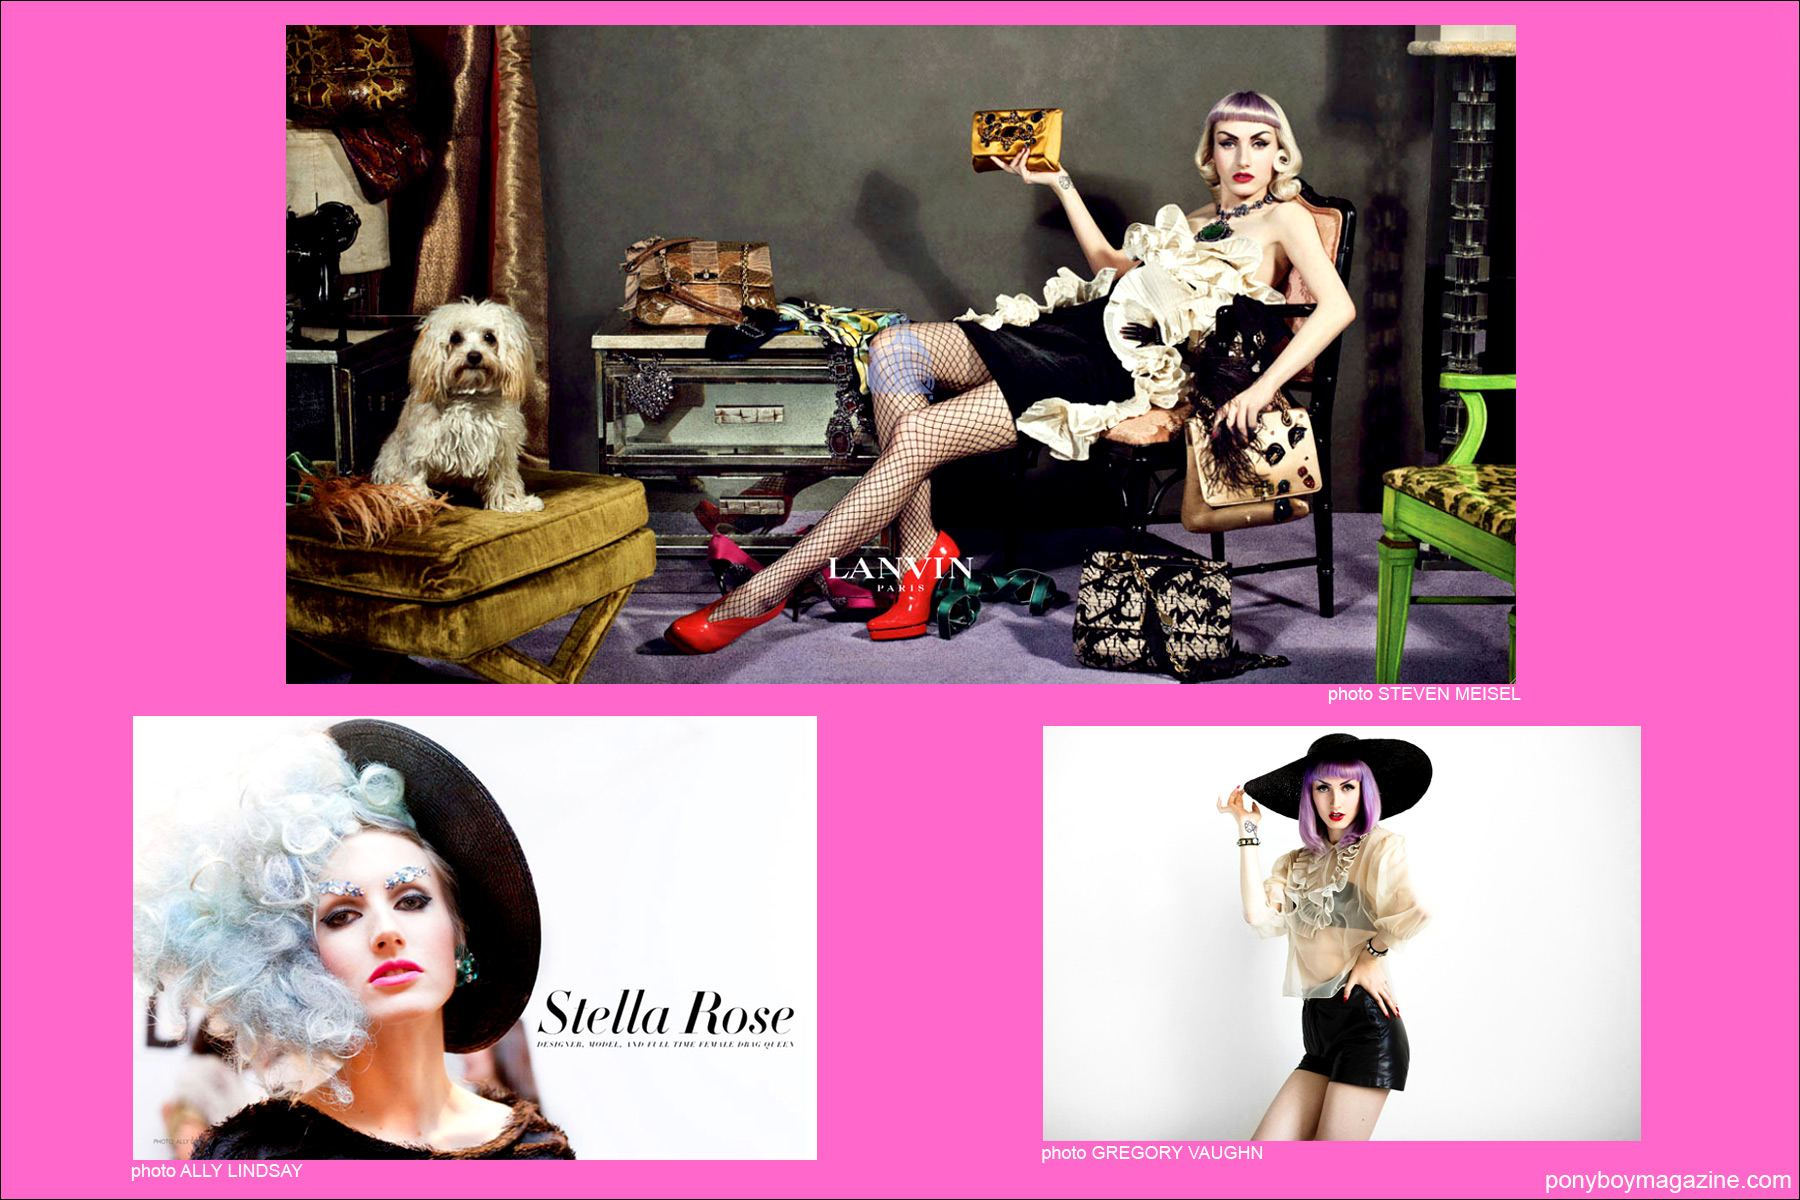 Images of model Stella Rose Saint Clair including a Lanvin ad photographed by Steven Meisel, Ponyboy Magazine New York City.